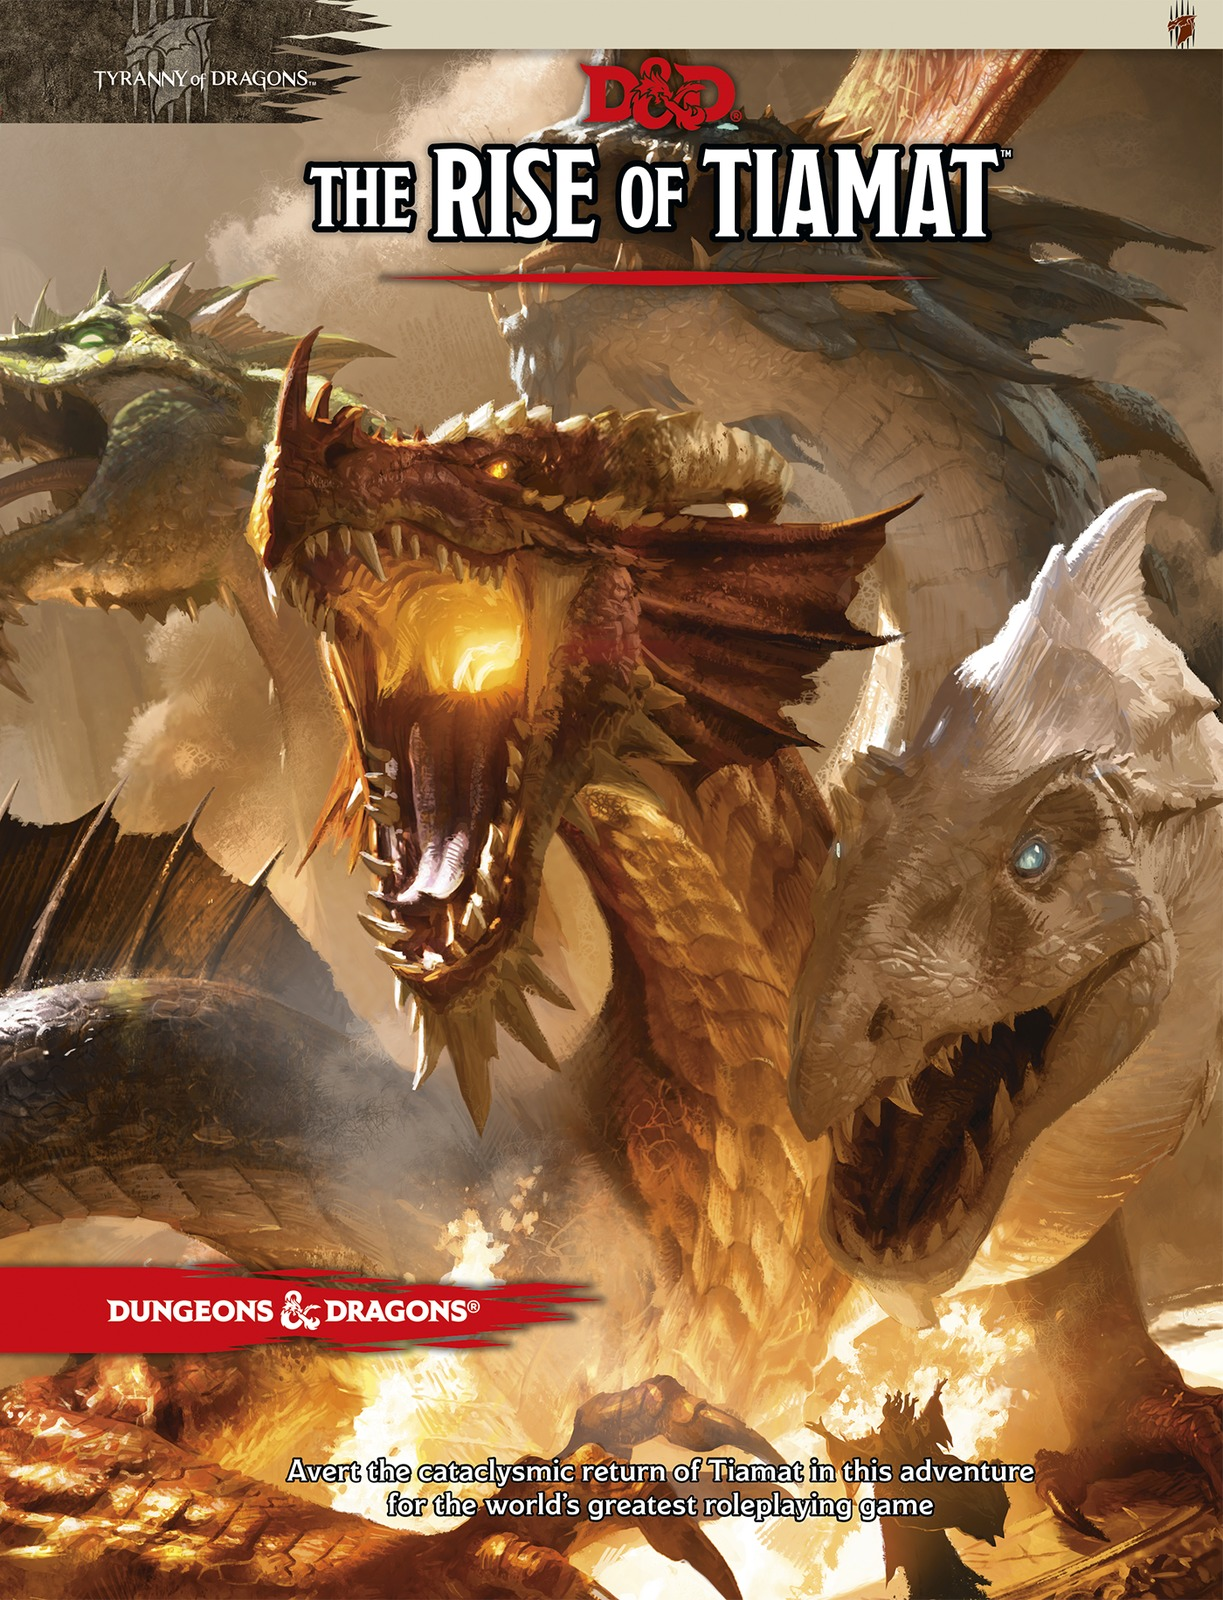 D&D The Rise of Tiamat image